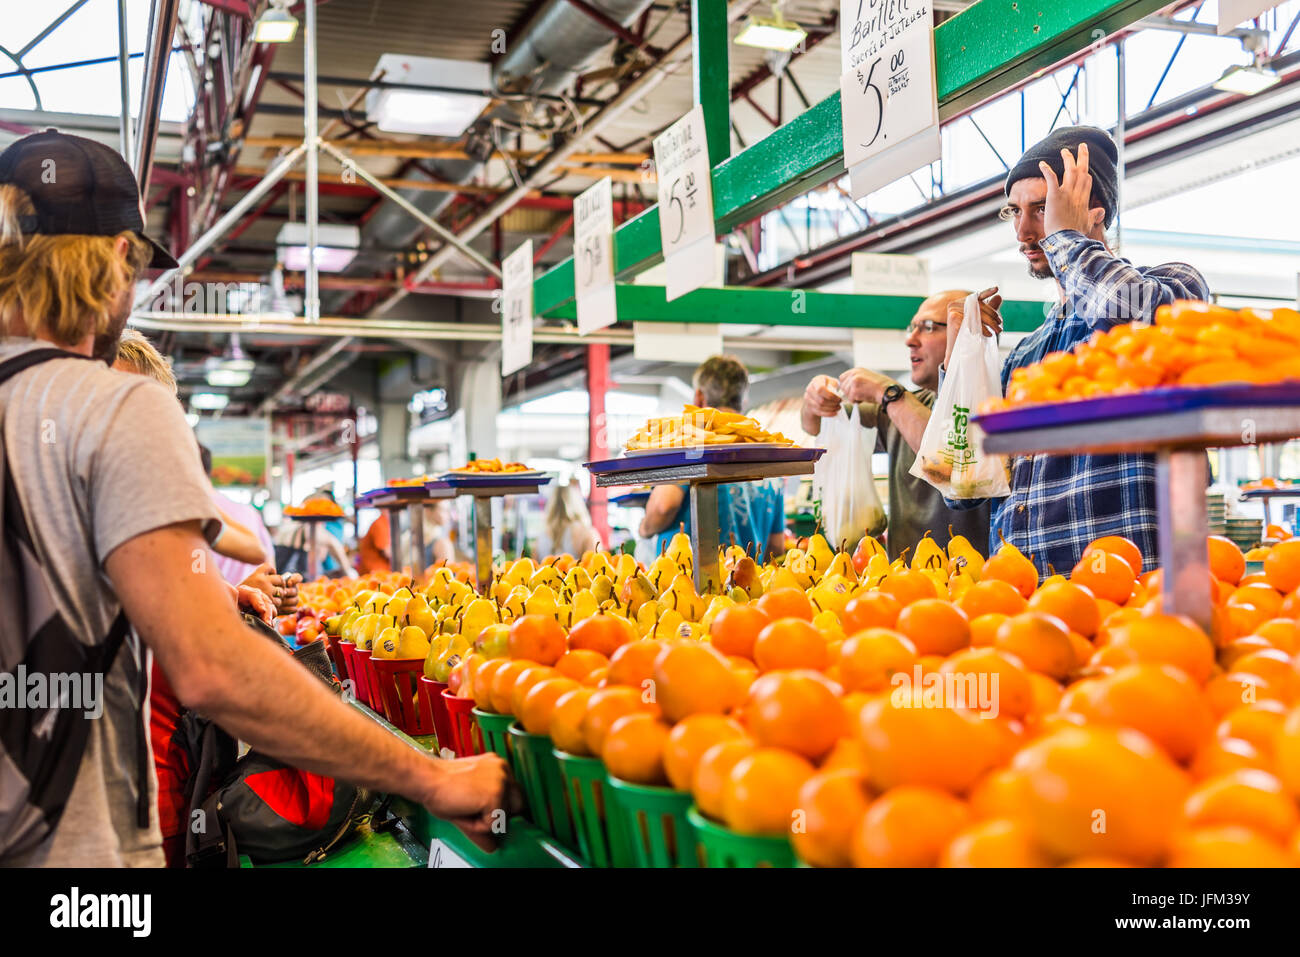 Montreal, Canada - May 28, 2017: Man selling produce by fruit stand with sample slices at Jean-Talon farmers market - Stock Image